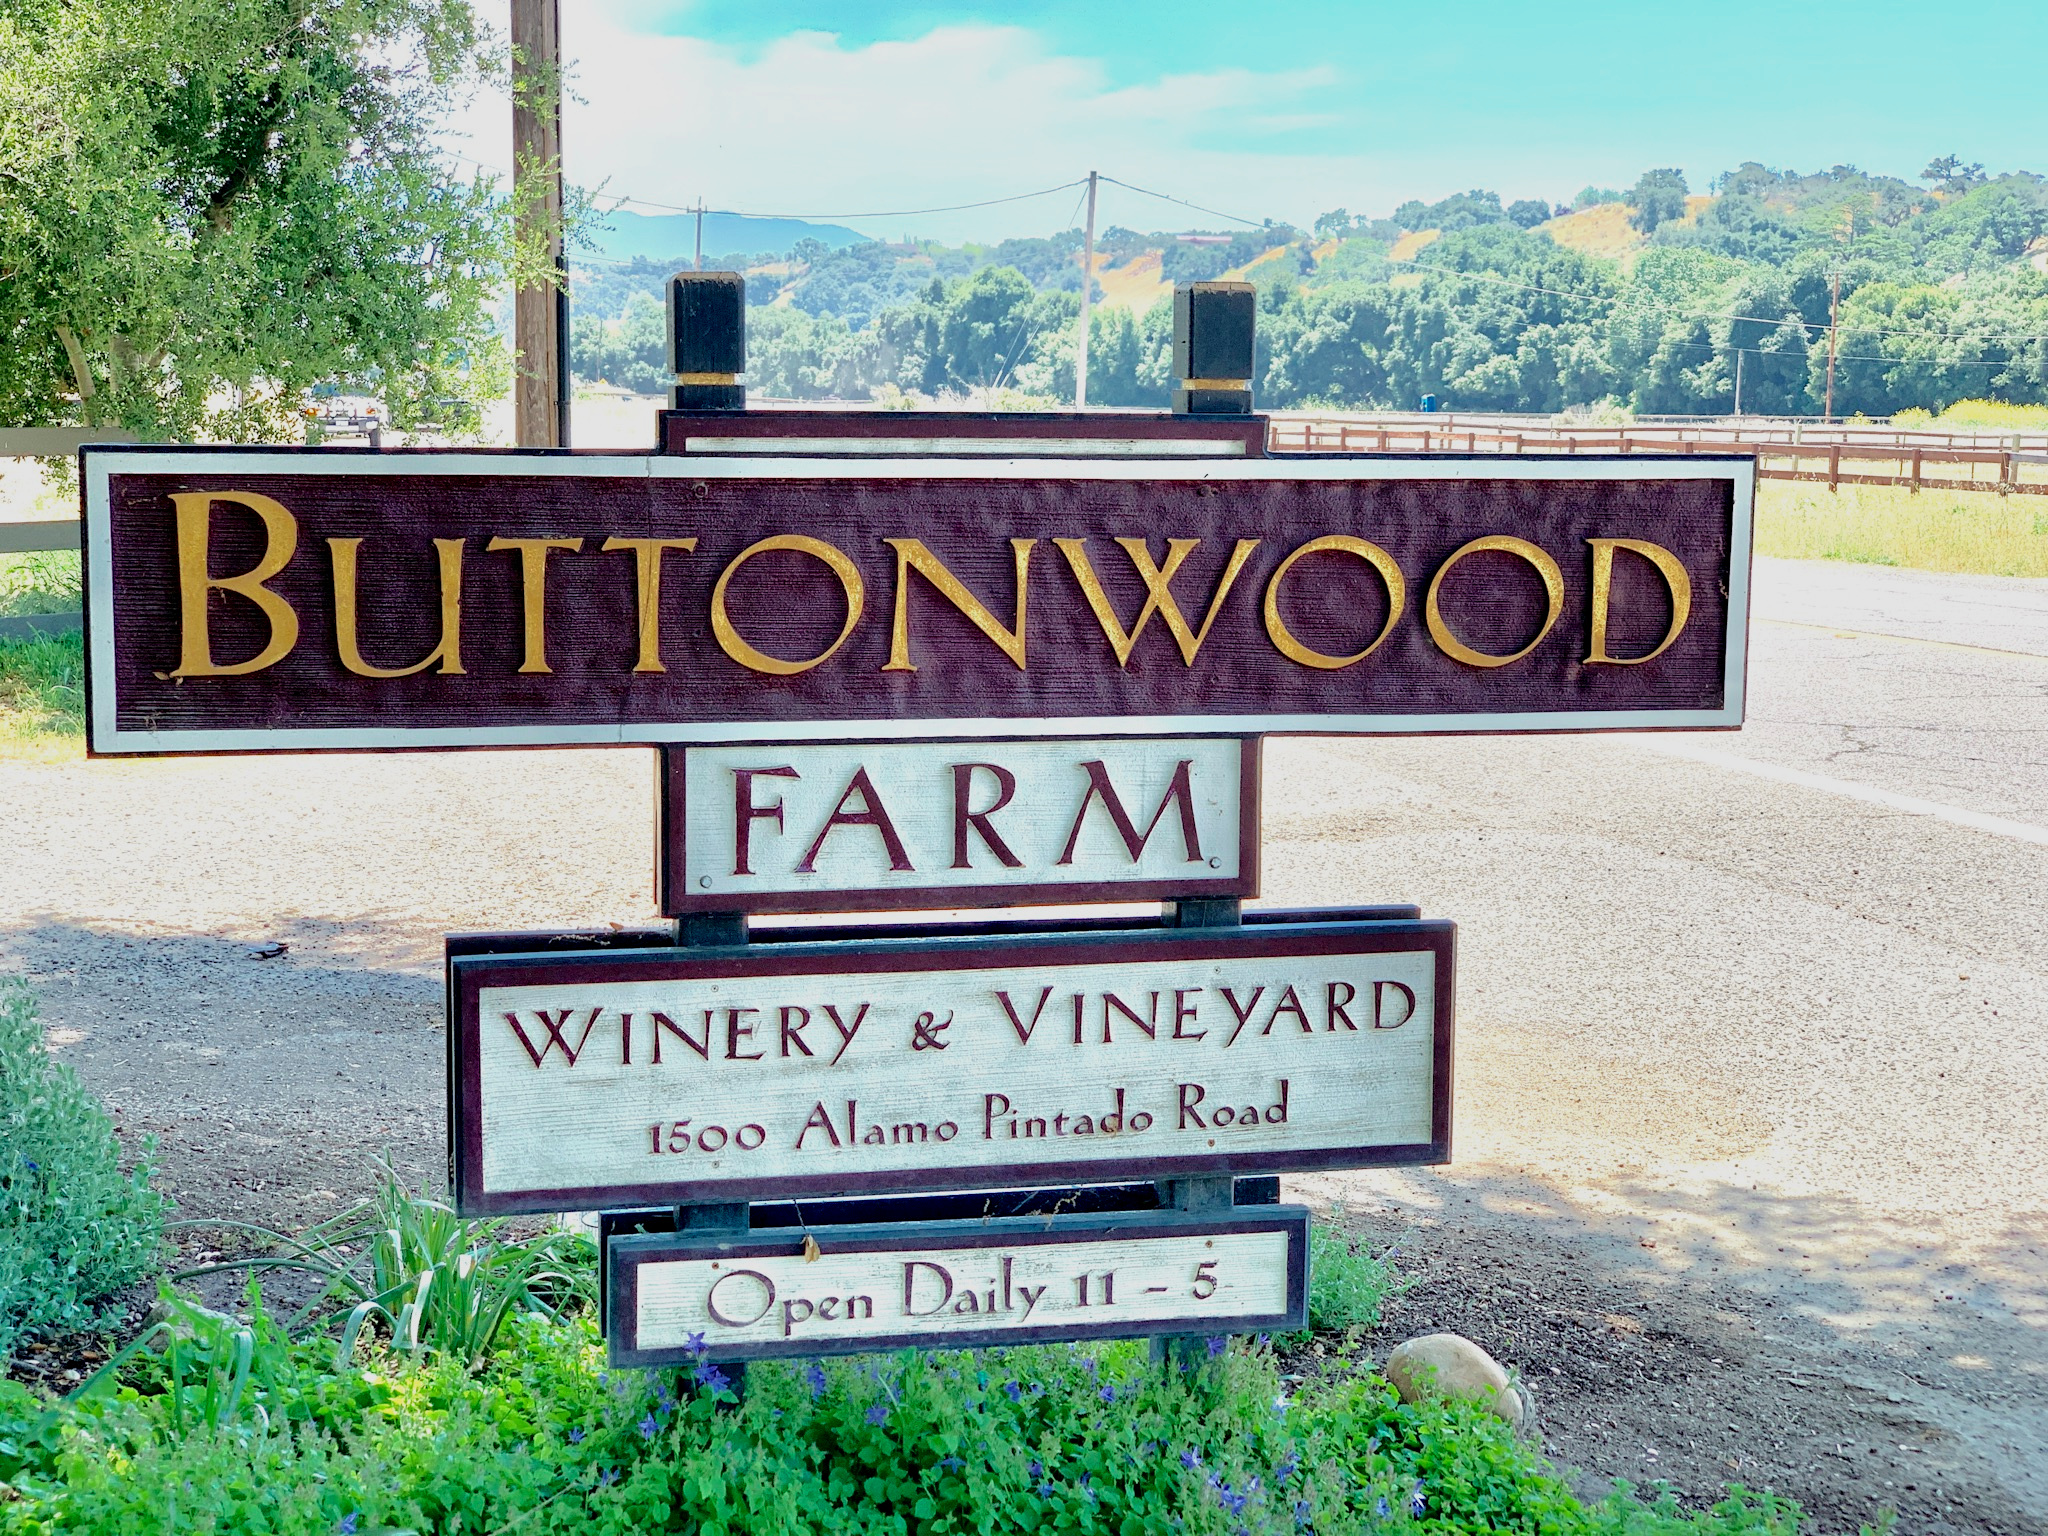 Buttonwood Farm Winery & Vineyards | Santa Barbara Wine Country | Erika Beach